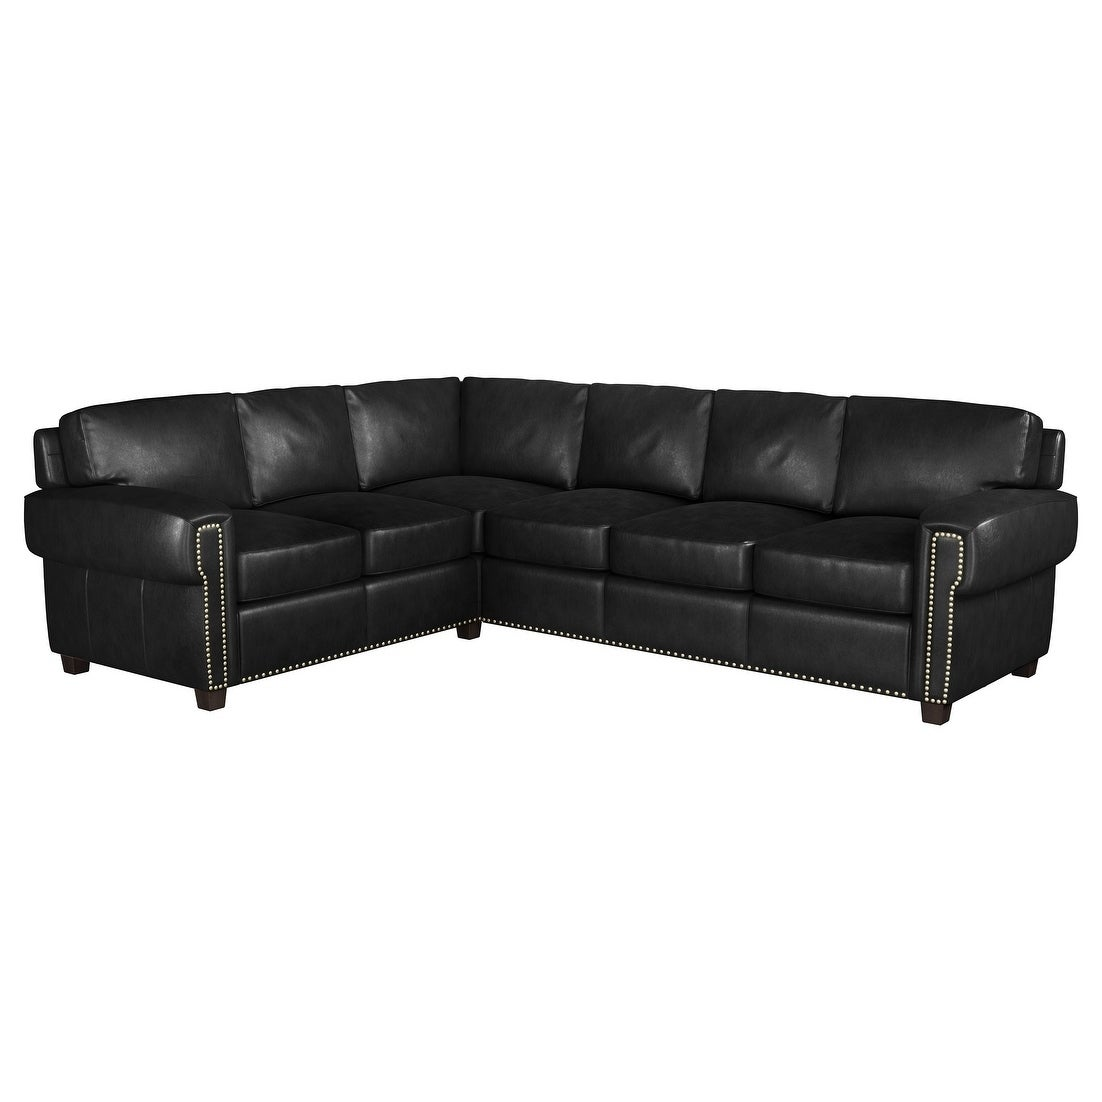 Incredible Made To Order Como 100 Top Grain Leather Sectional Pabps2019 Chair Design Images Pabps2019Com